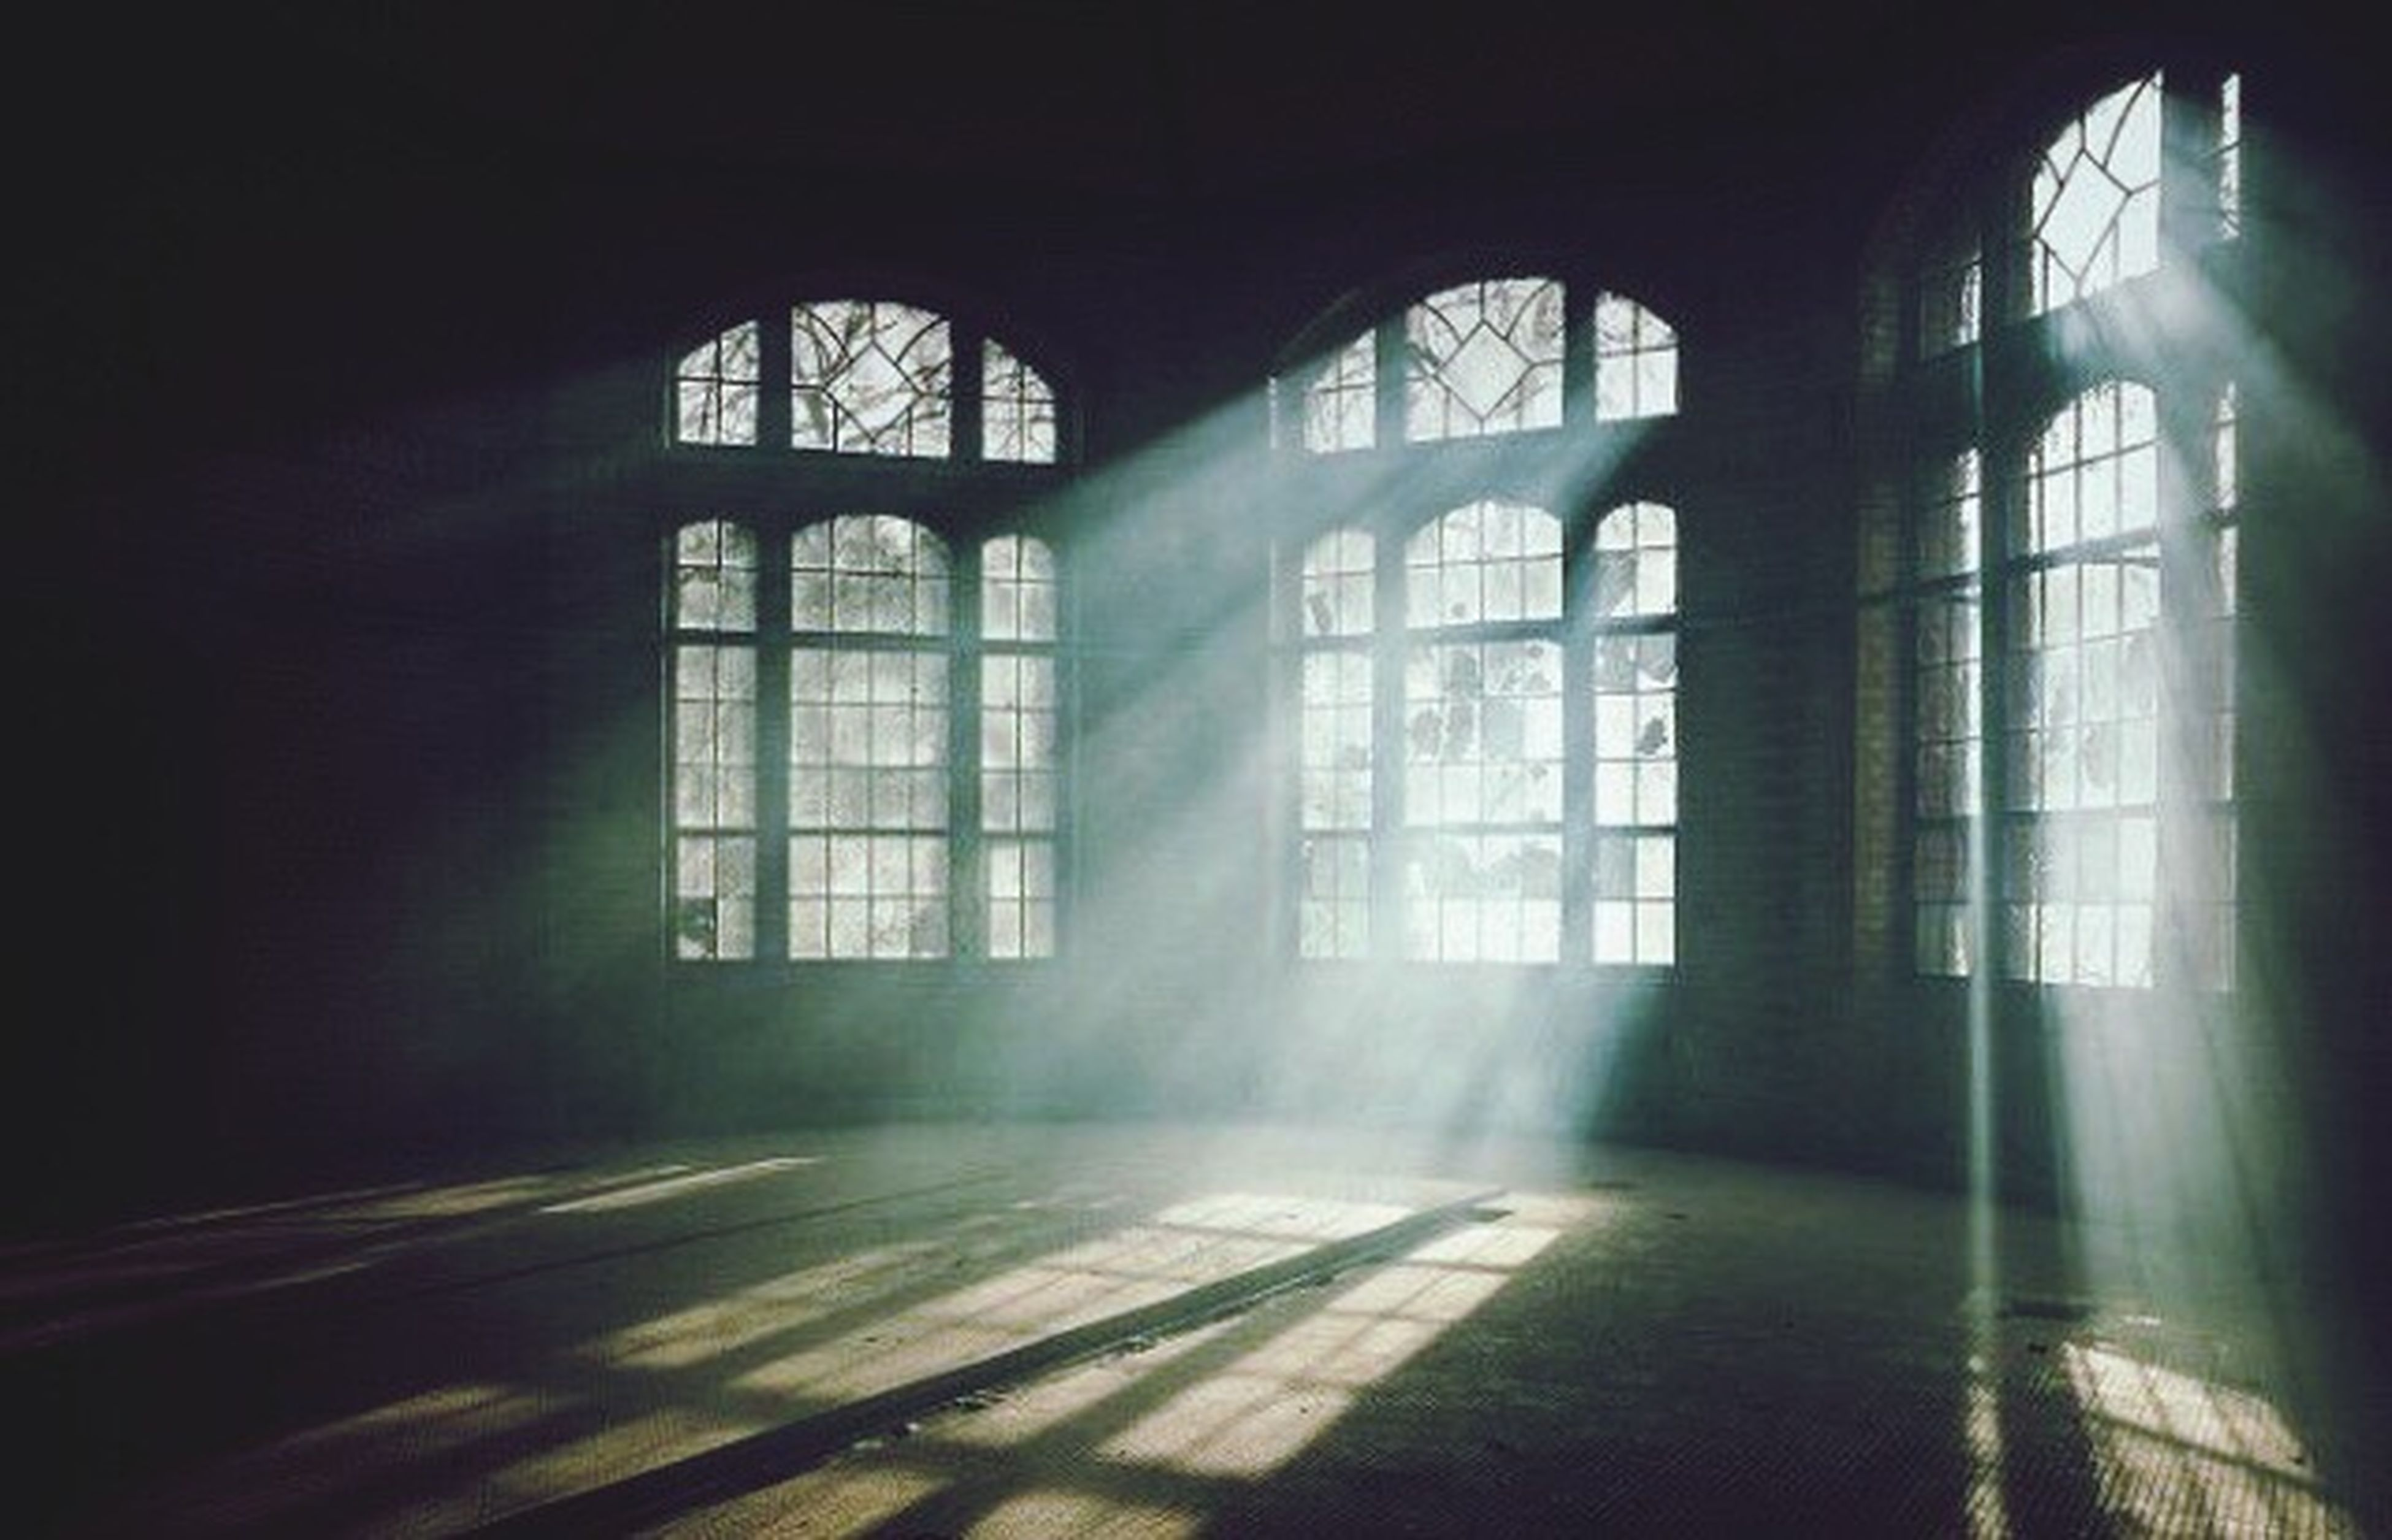 indoors, window, architecture, built structure, empty, arch, glass - material, sunlight, door, interior, the way forward, absence, corridor, no people, flooring, transparent, day, building, wall, ceiling